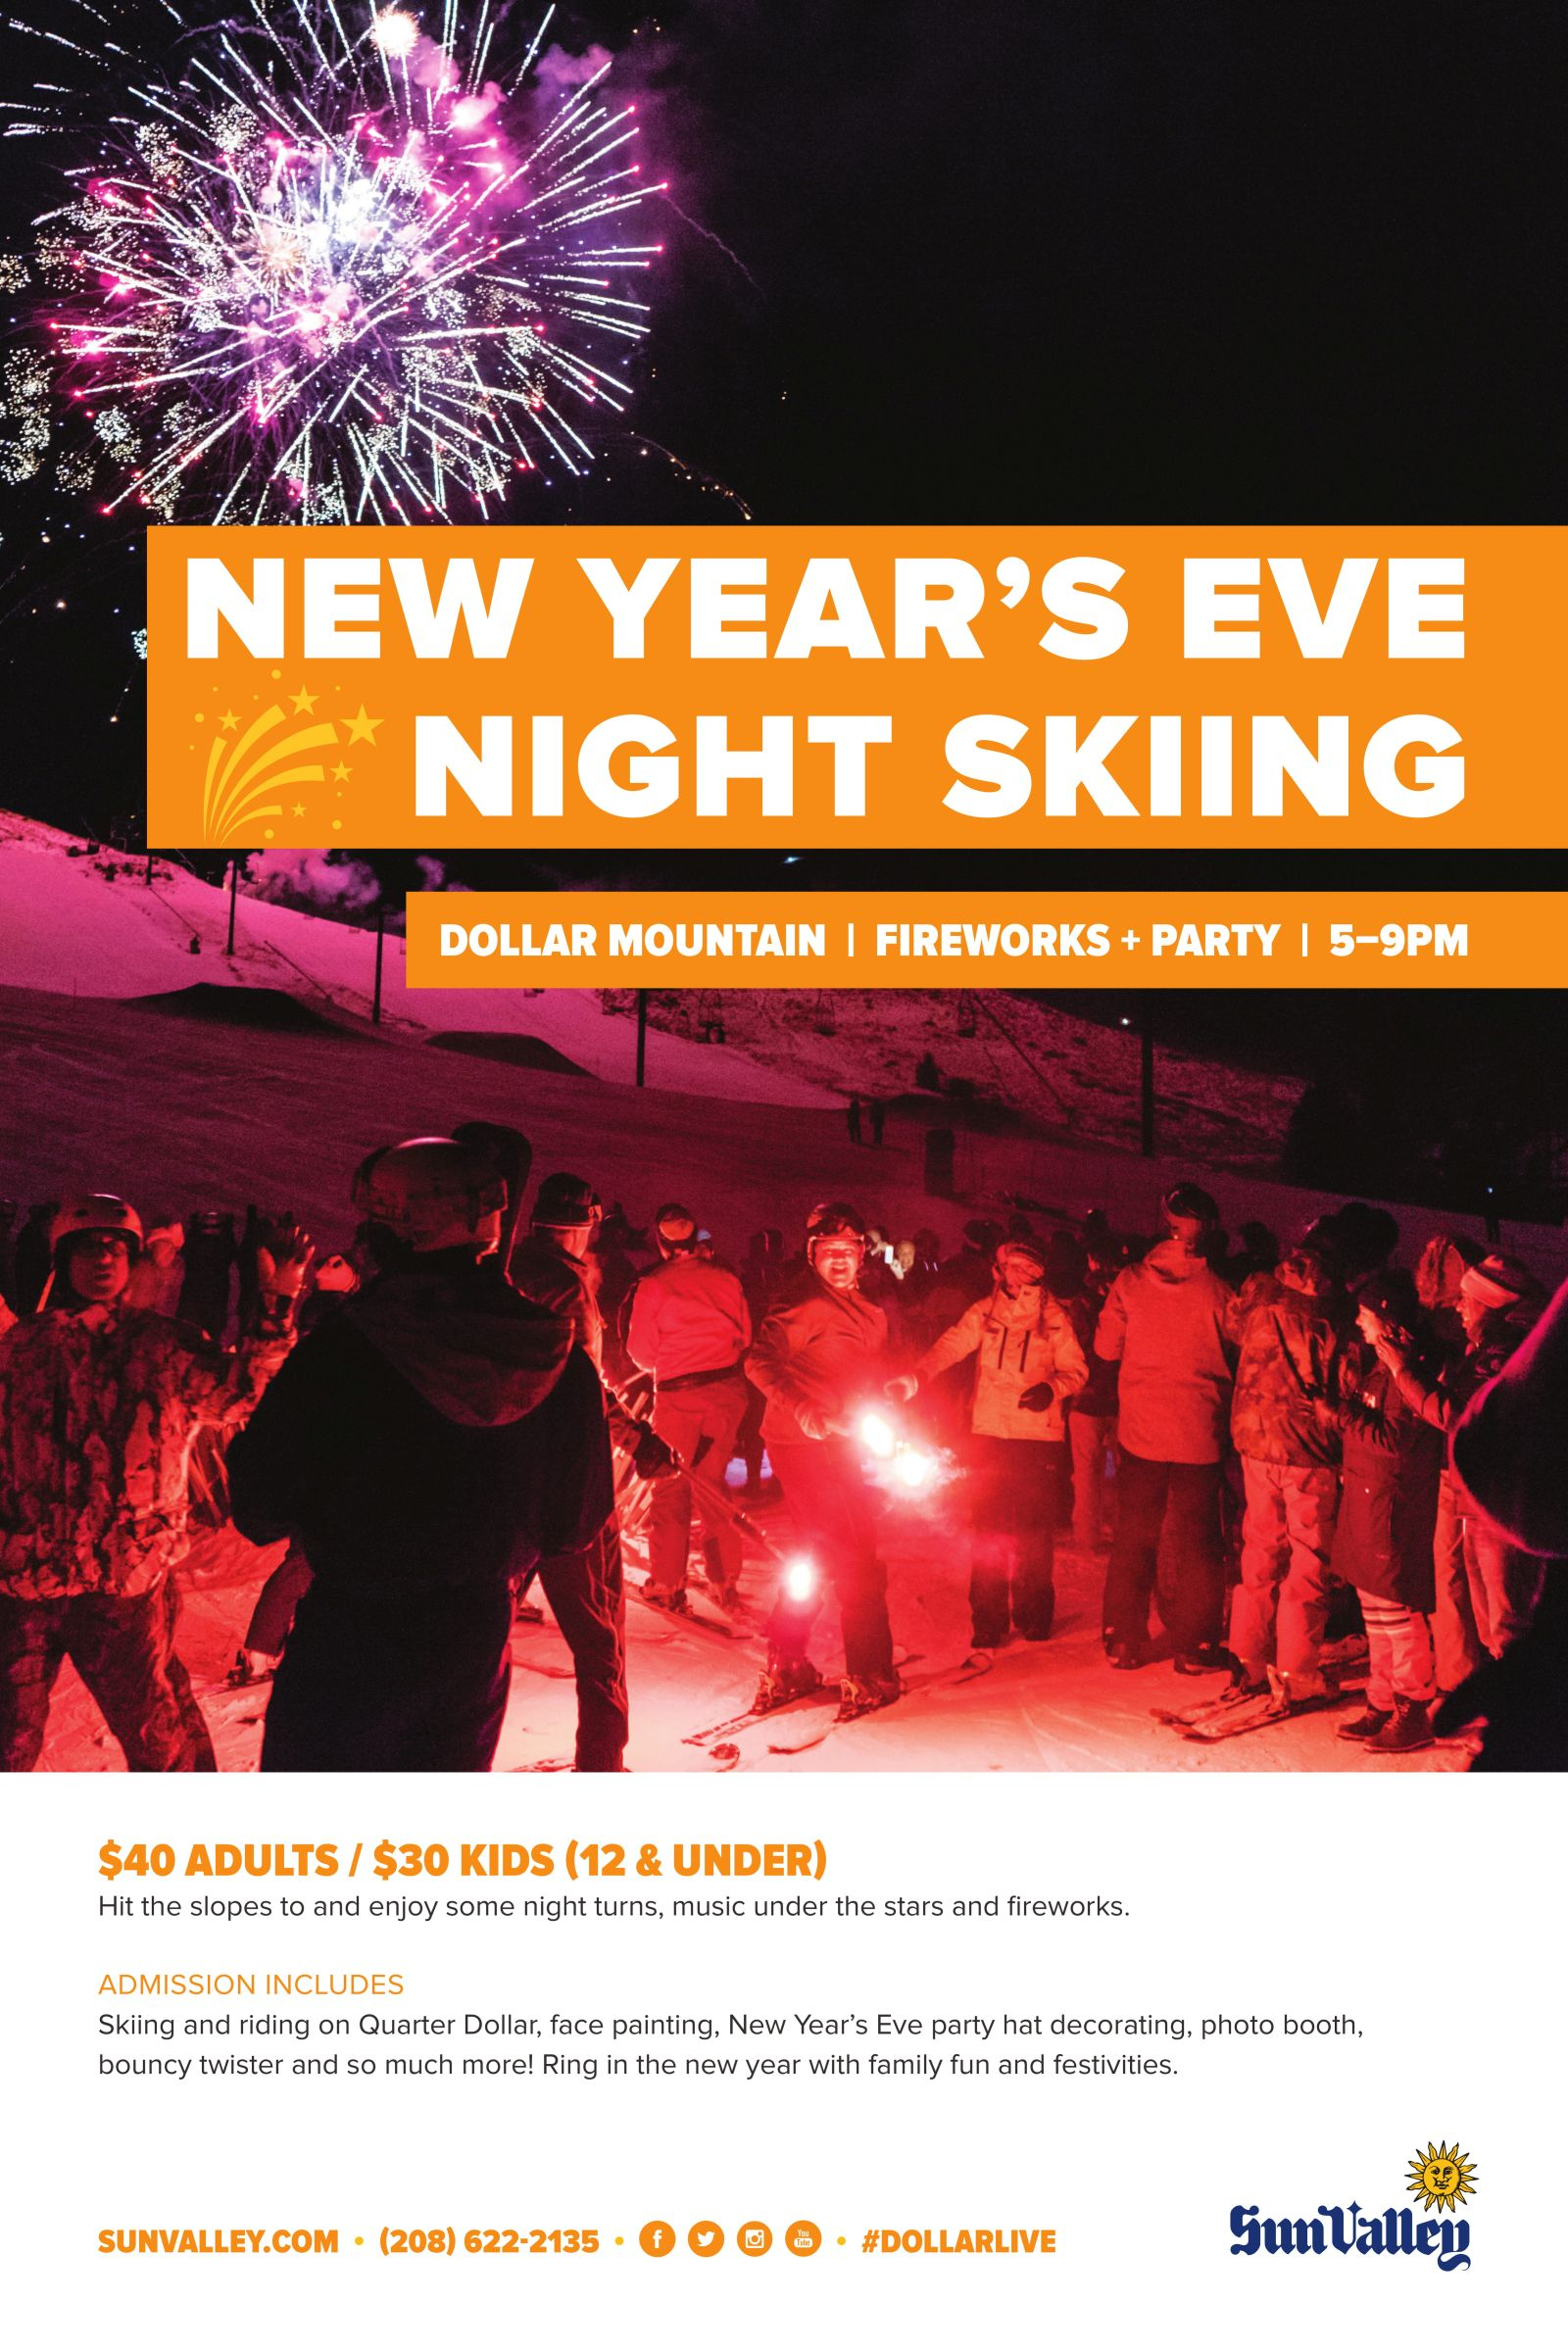 Family Night Ski, Party & Fireworks @ Dollar Mountain